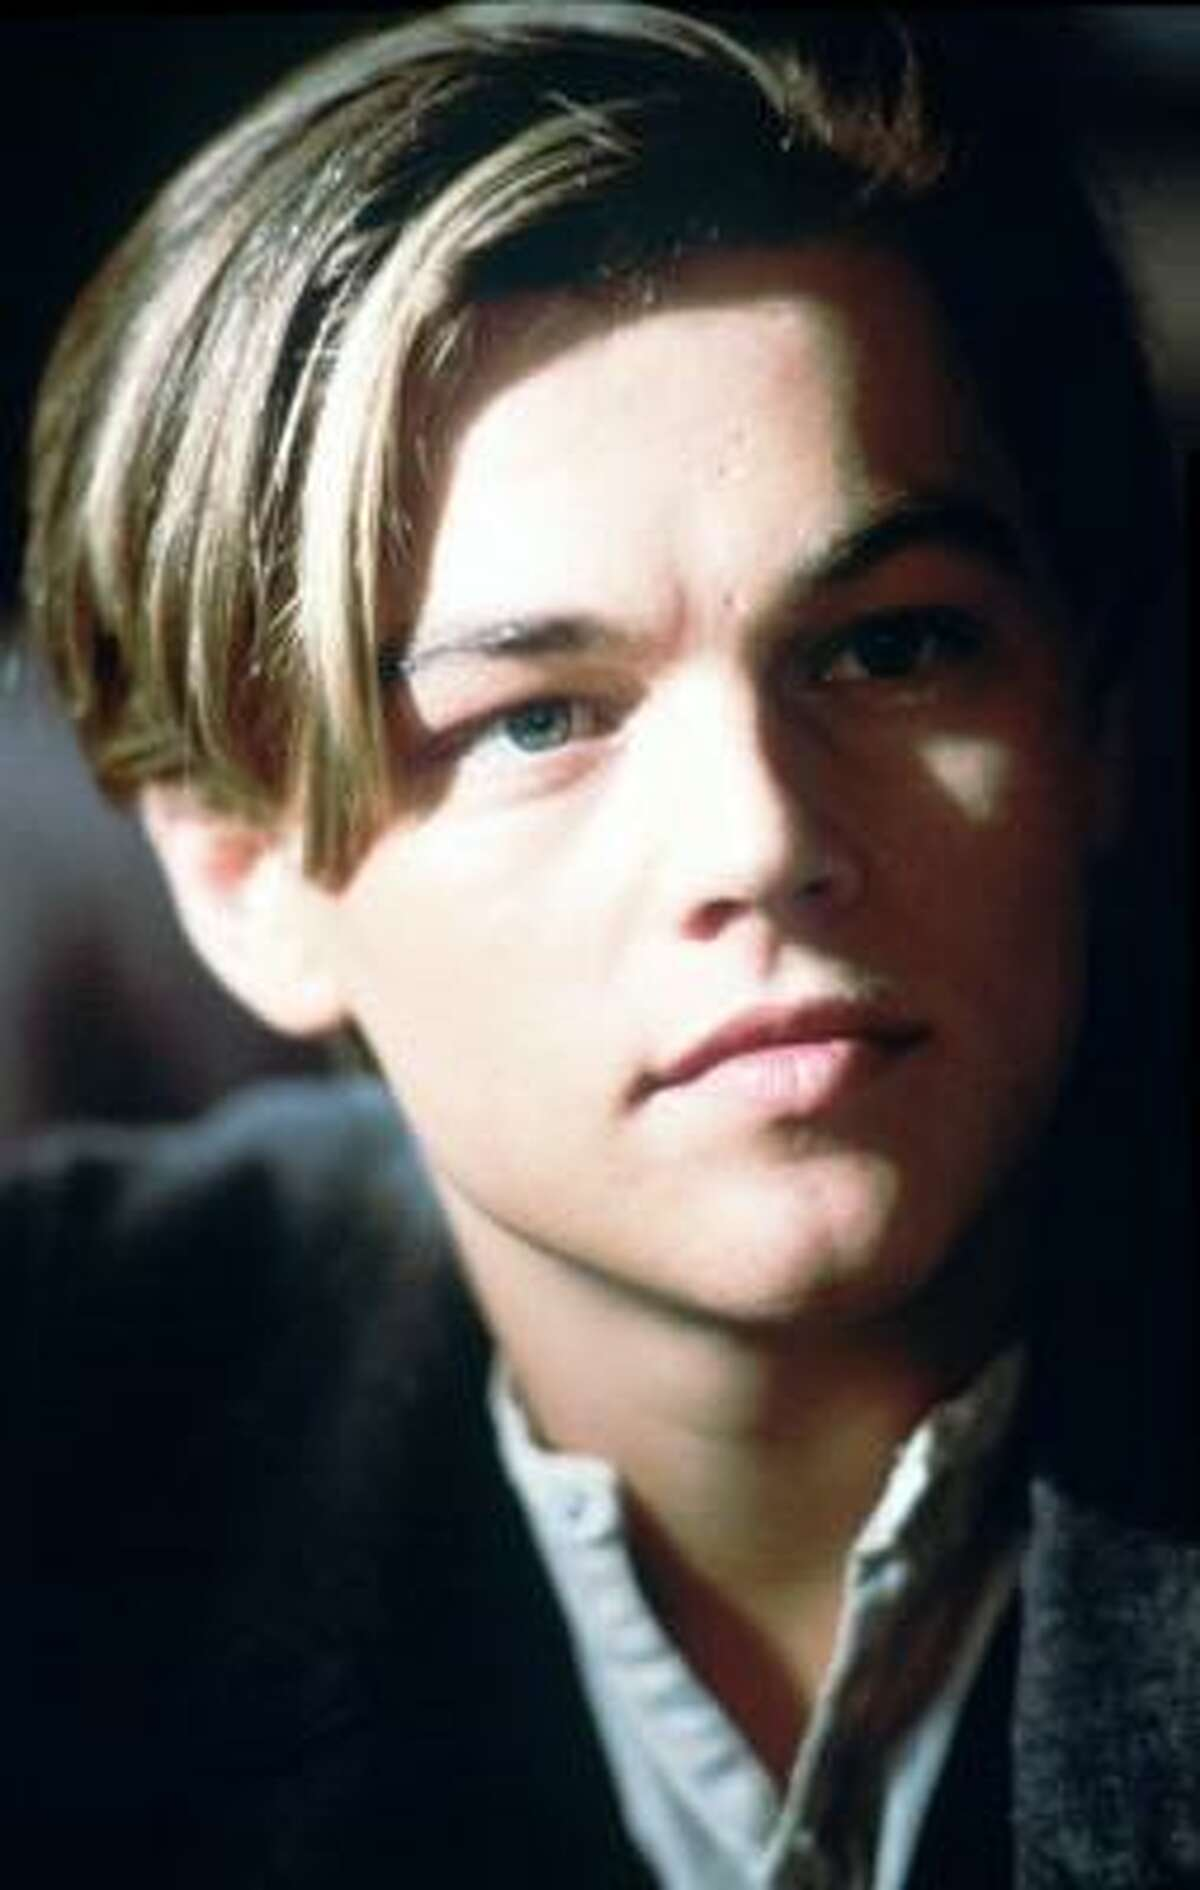 Leonardo DiCaprio:Romeo + Juliet may not have been his first hit movie, but it was definitely the first to send him spiraling into teenage super-stardom. He graced the cover of every Teen Bop-esque magazine, easily making him the most obsessed-over teen-sensation in the country.